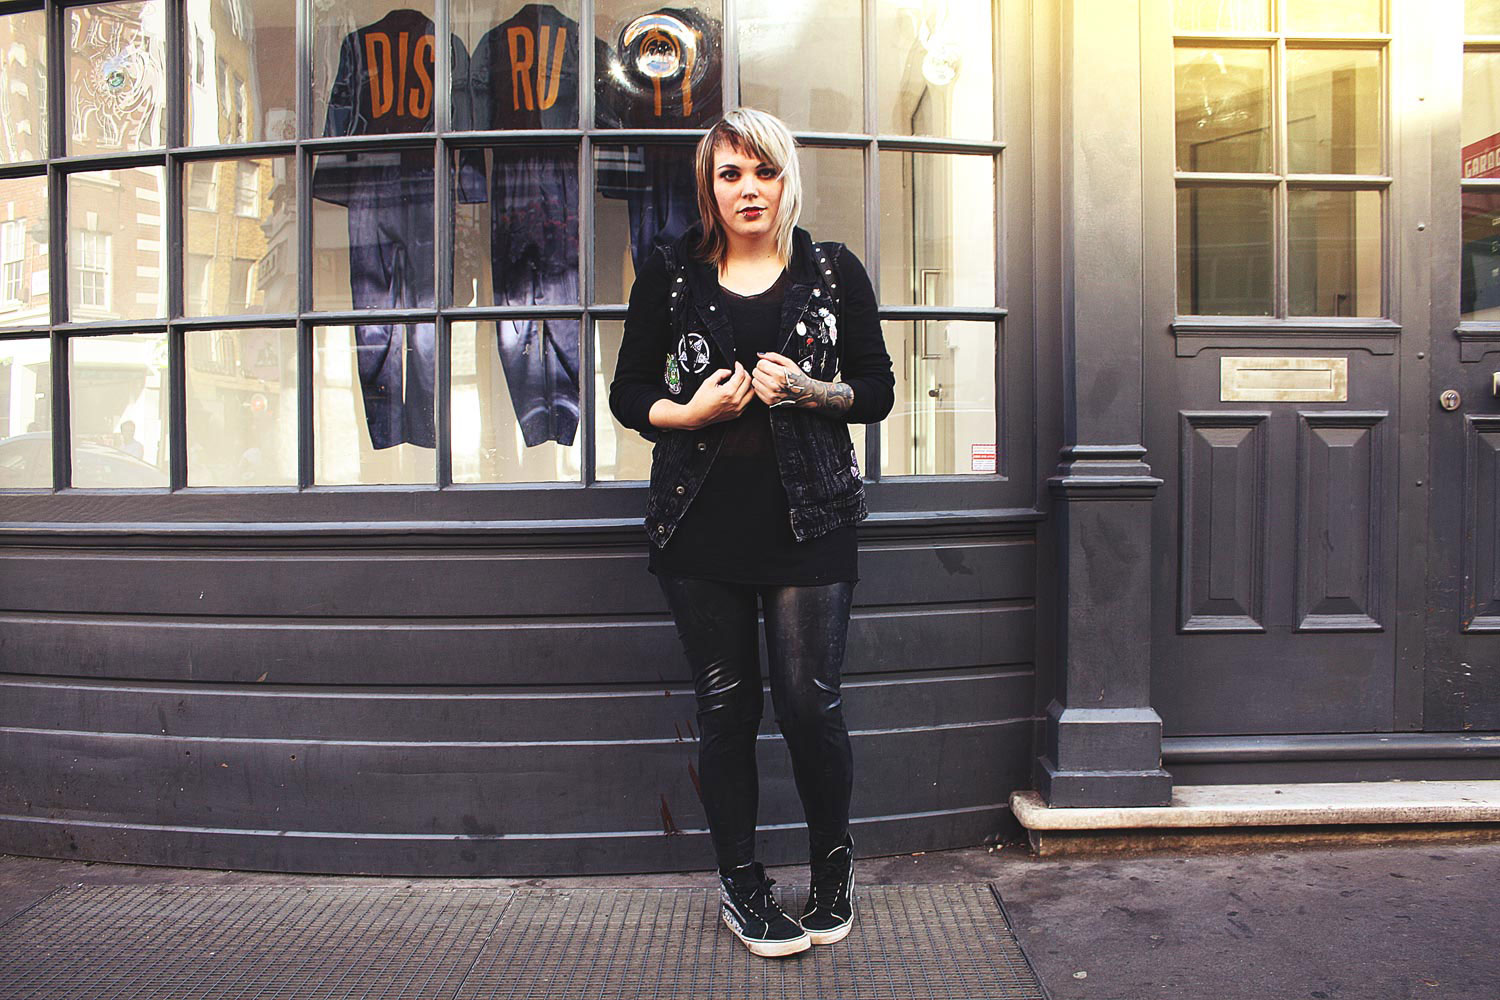 London, leo, leopardenmuster, animal print, disturbia, rucksack, H&M, jeansjacke, pins, pin game, latex , leggings, latex leggings, vans, mind, moon, transparent, alternative, alternative fashion, alternative girl, alternative mode, altgirl, berlin, berlin fashion, berlin fashion blogger, berlin mode, berlin streetstyle, blogger, fashion blogger, girls with piercings, girls with tattoos, grunge, grunge fashion, grunge mode, mode, Punk, punk fashion, punk mode, punkgirl, punkmädchen, scenehair, snakebites, split hair, splithair, tattoomädchen, tattoo model, patches, nina hastens, chris silver, buttons, bruised ego, wir sind die toten, aft, killstar, alien cat, robert smith